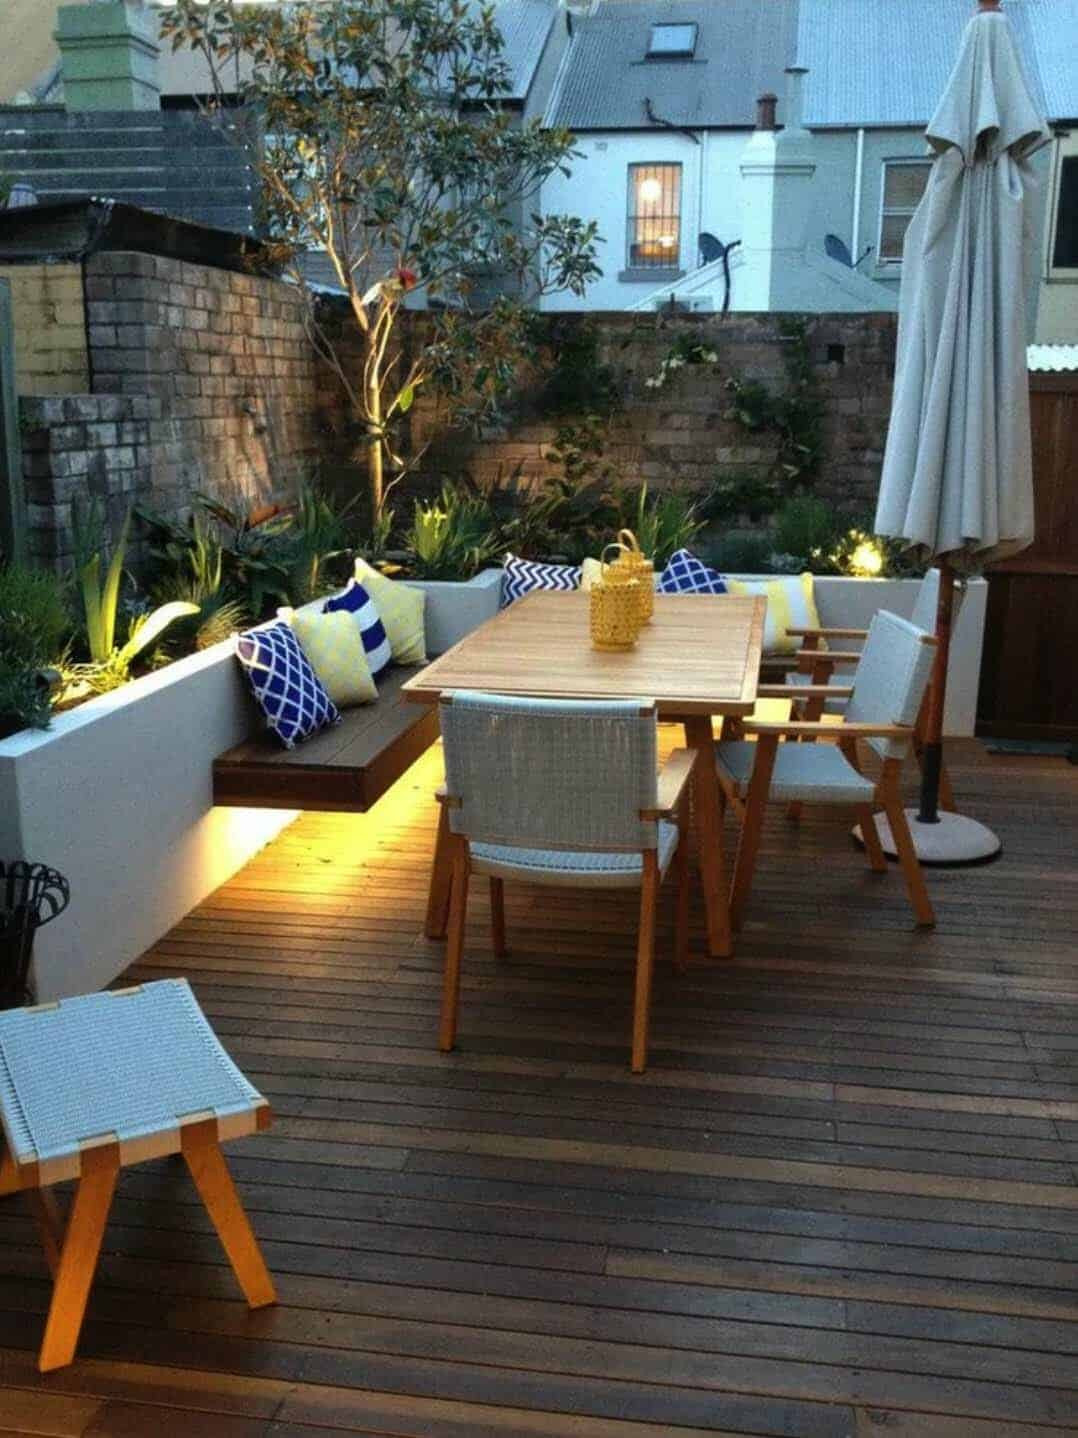 A Small Outdoor Entertaining Deck In Sydney Is Illuminated By Lights The Evening Back Wall An Existing Brick While Garden